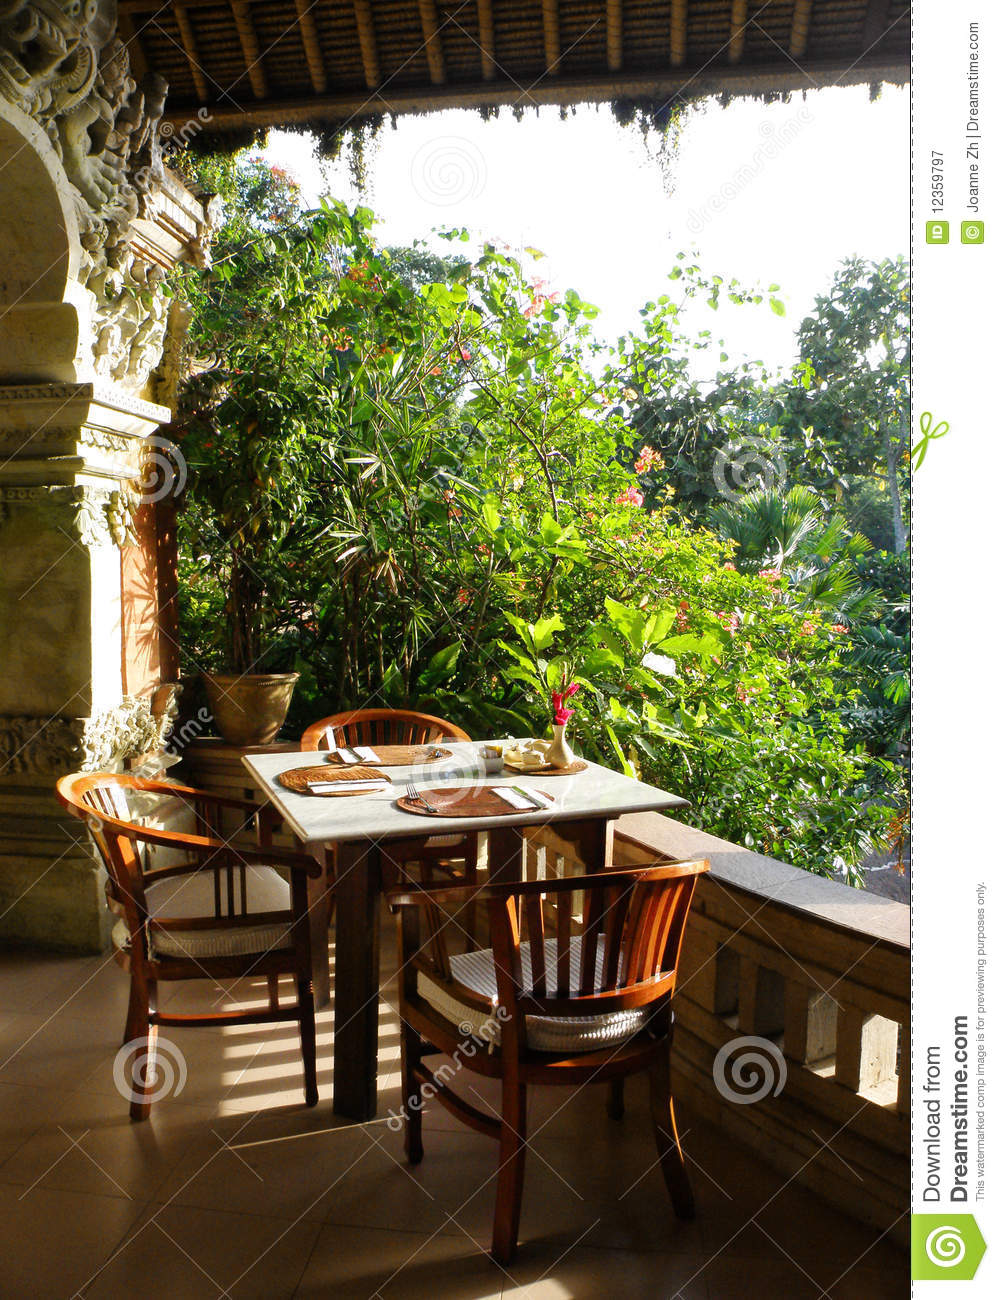 Tropical Outdoor Dining Patio Stock Image Image Of Asian